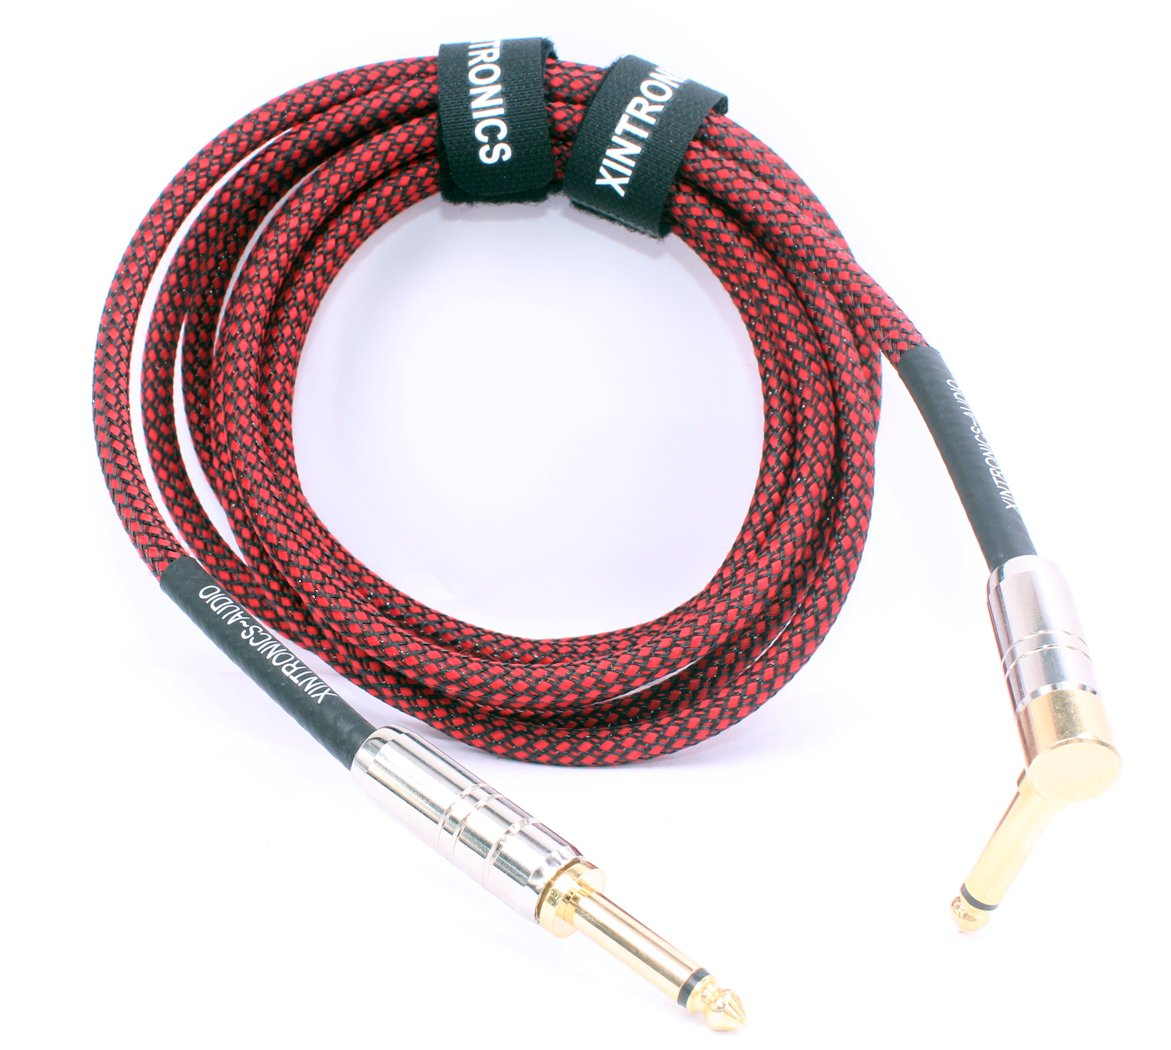 Amazon.com: XINTRONICS Guitar Instrument Cable - 1/4 Inch TS to Instrument Cable, Gold 1/4